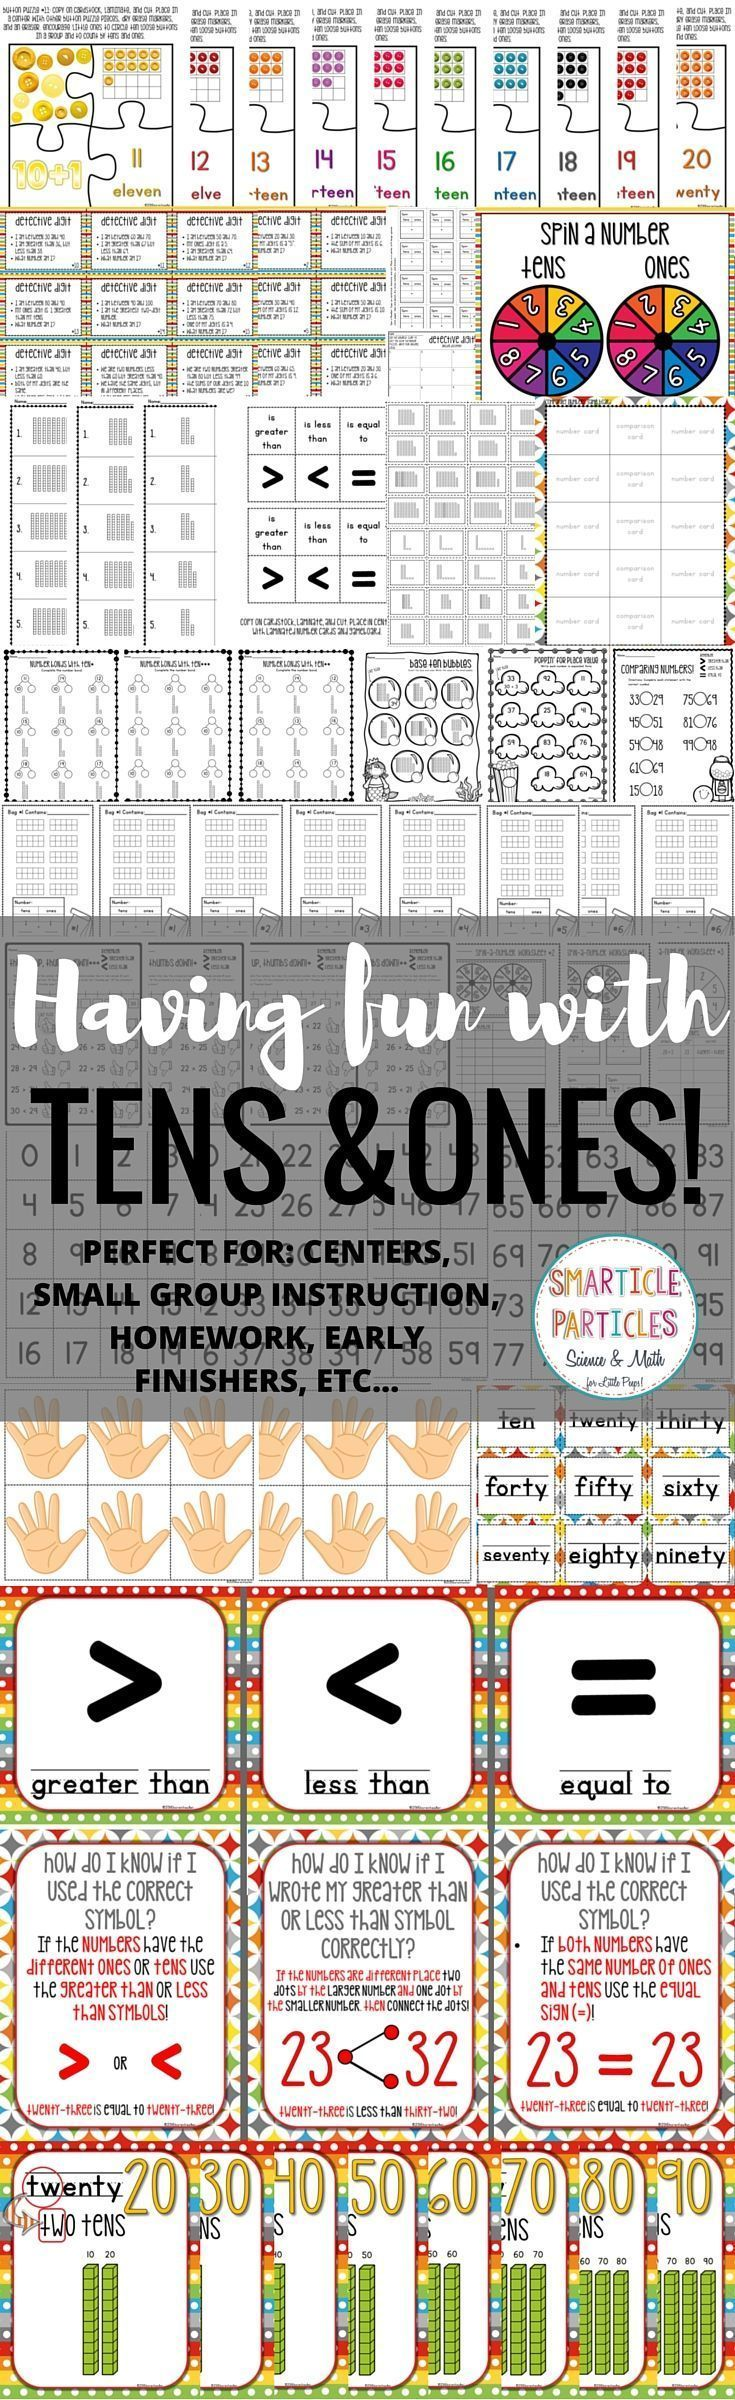 Best 25 tens and ones worksheets ideas on pinterest 1 tens place value tens and ones exploring place value with numbers 10 99 nvjuhfo Choice Image